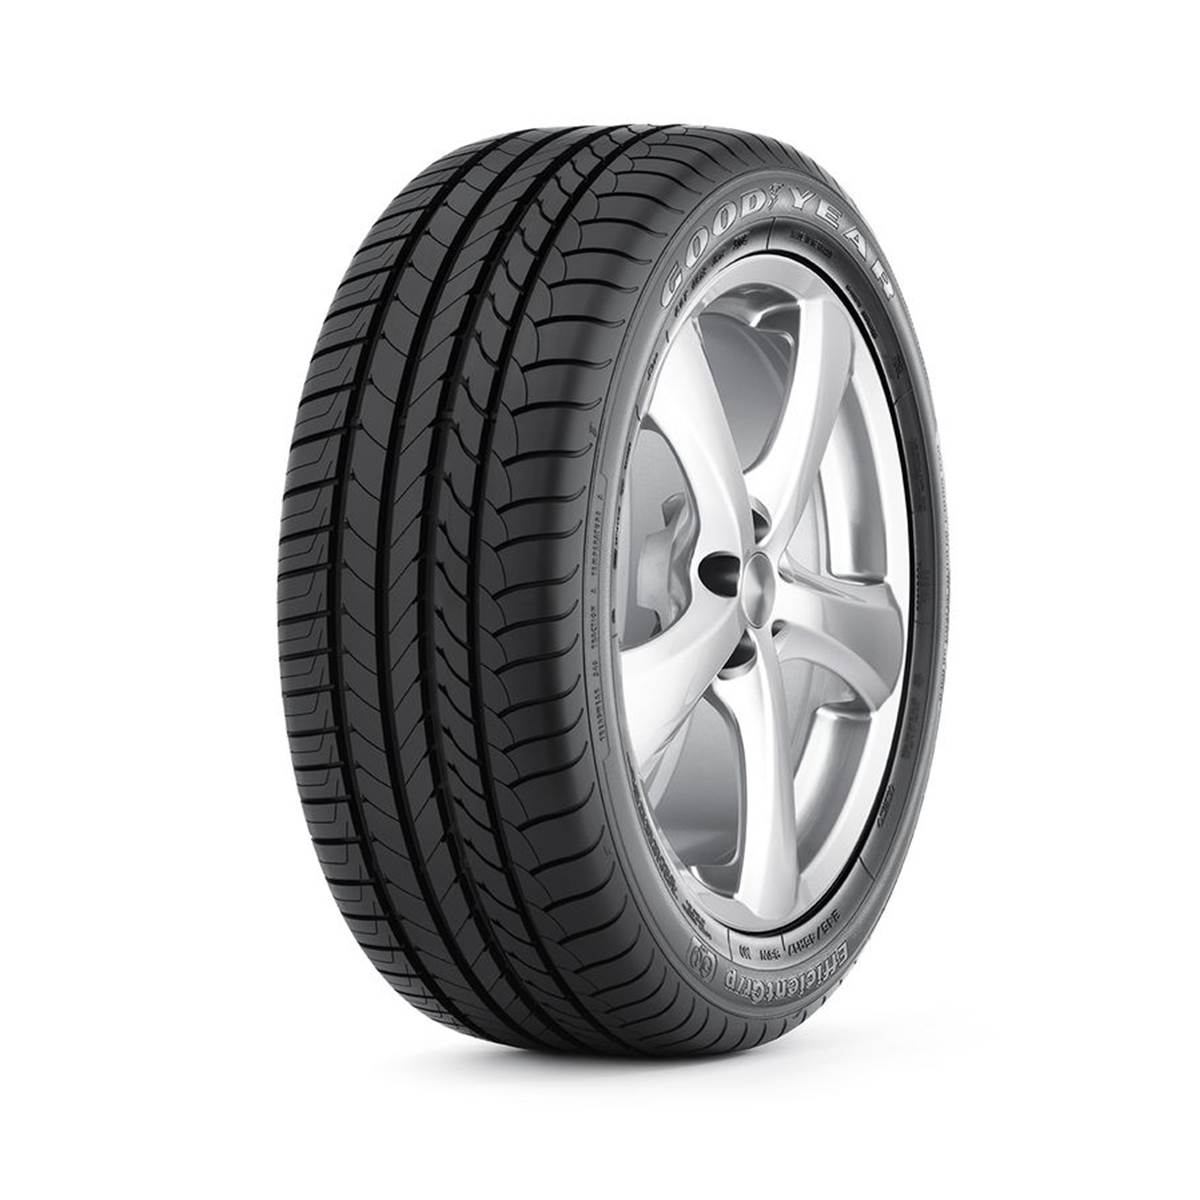 Pneu Goodyear 205/50R17 93H Efficientgrip XL